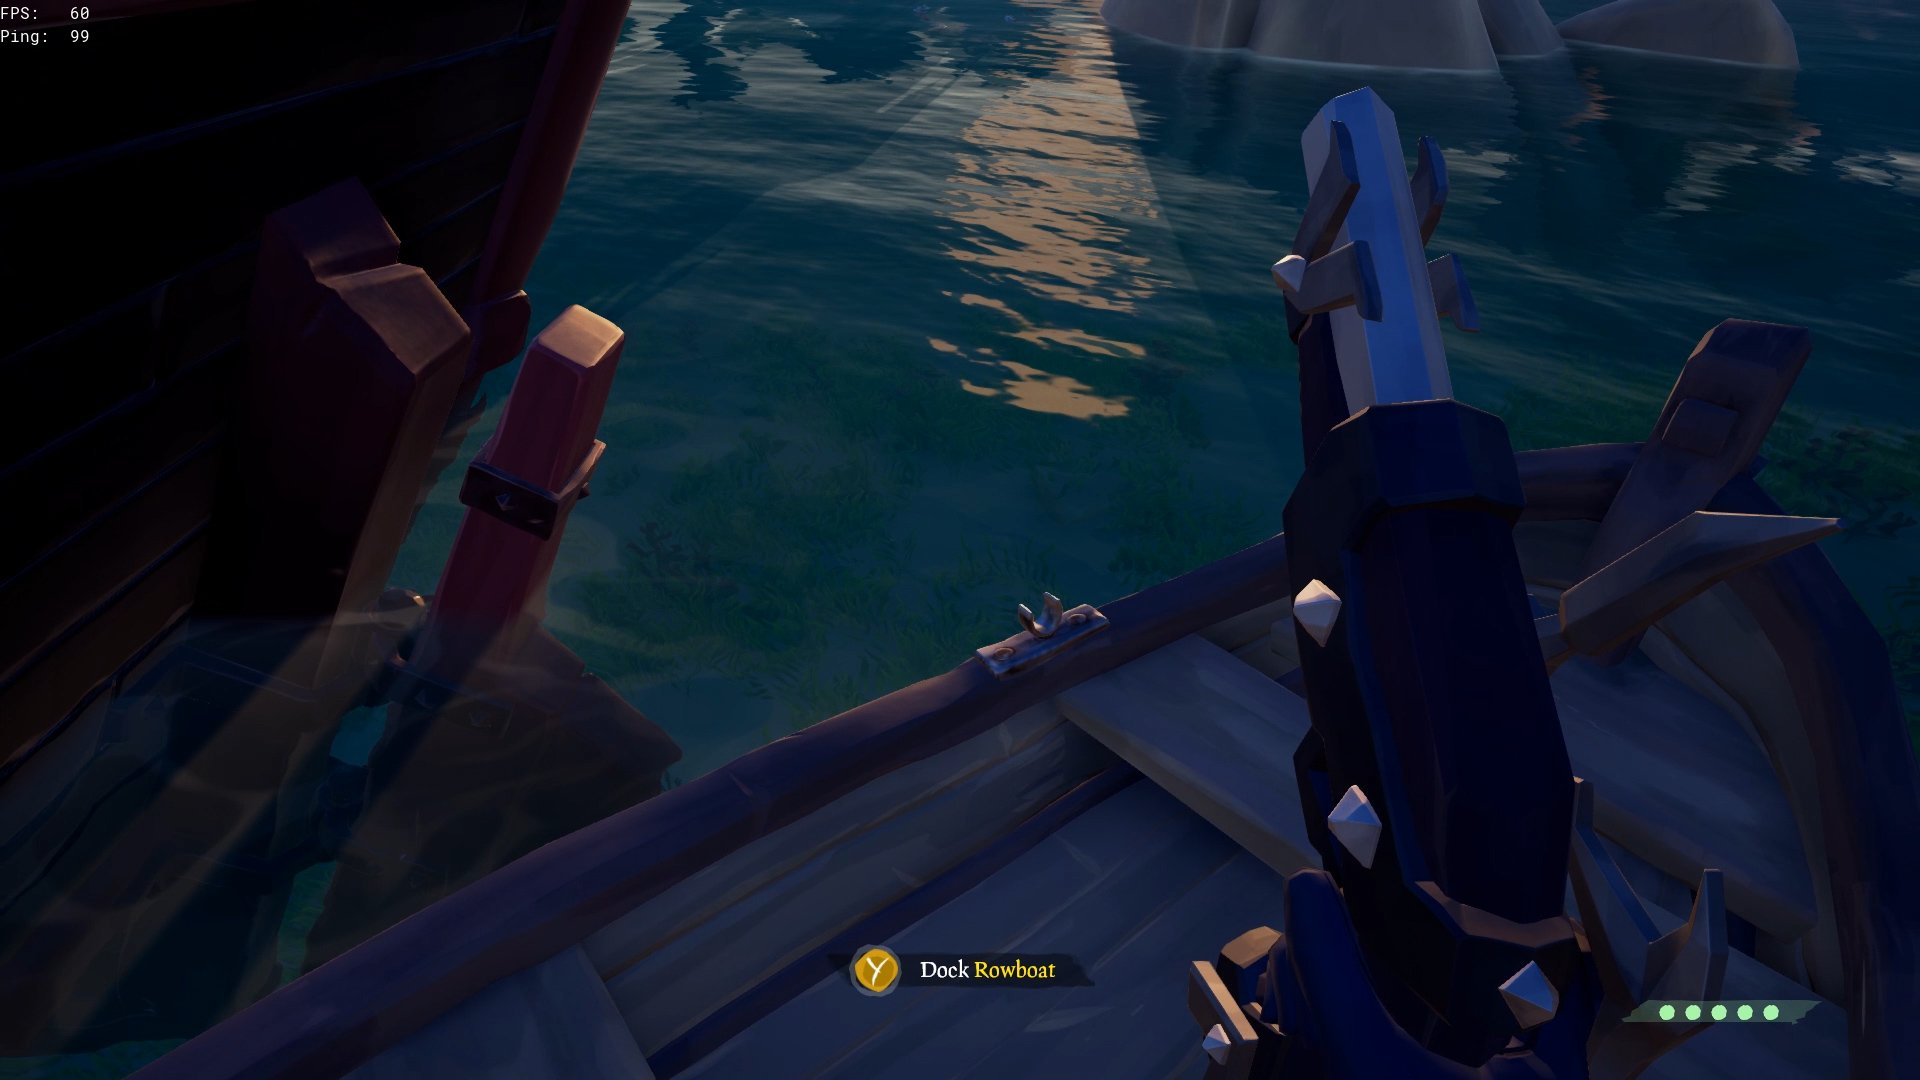 How to use the rowboat in Sea of Thieves | Shacknews